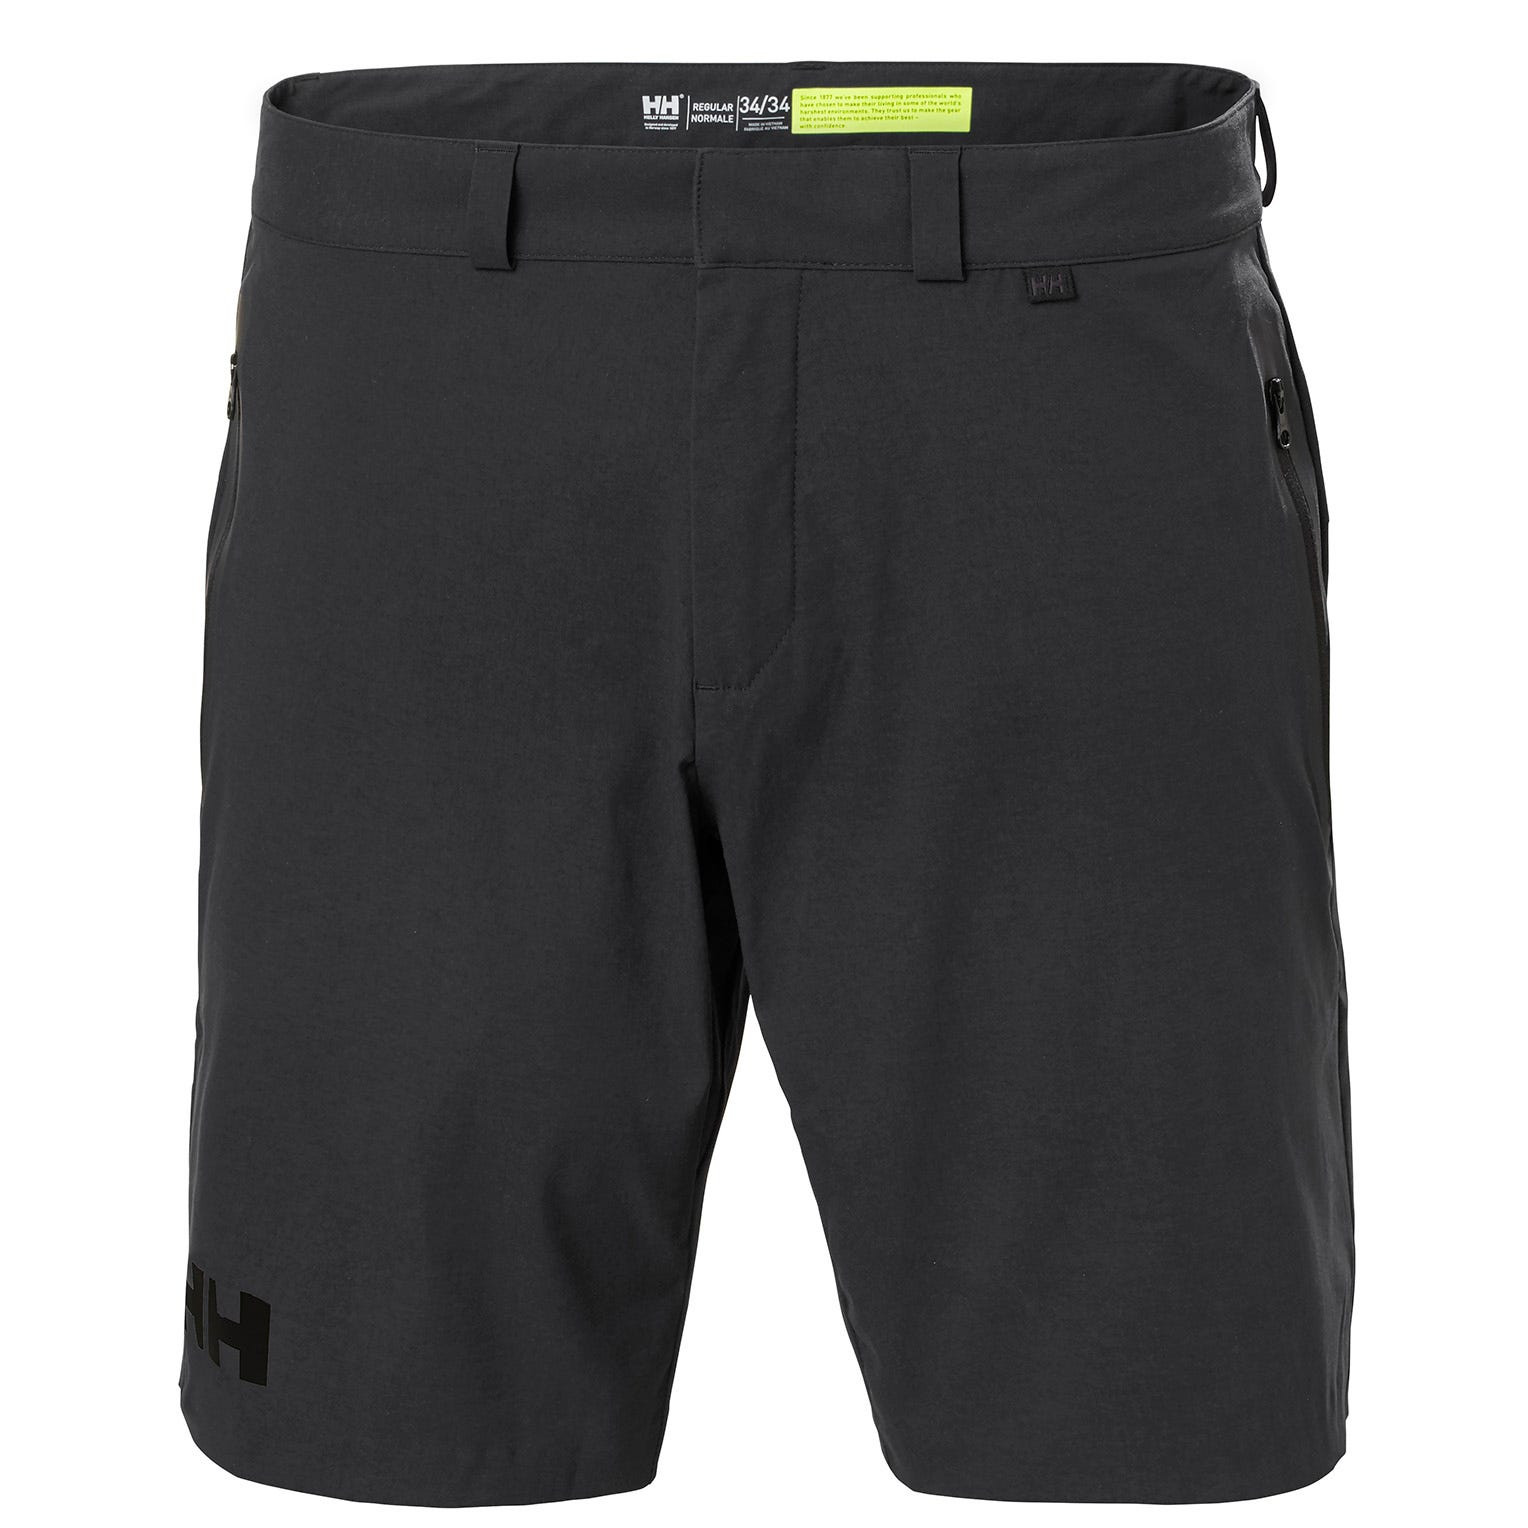 Helly Hansen Mens Hp Racing Shorts Sailing Trouser Black 42